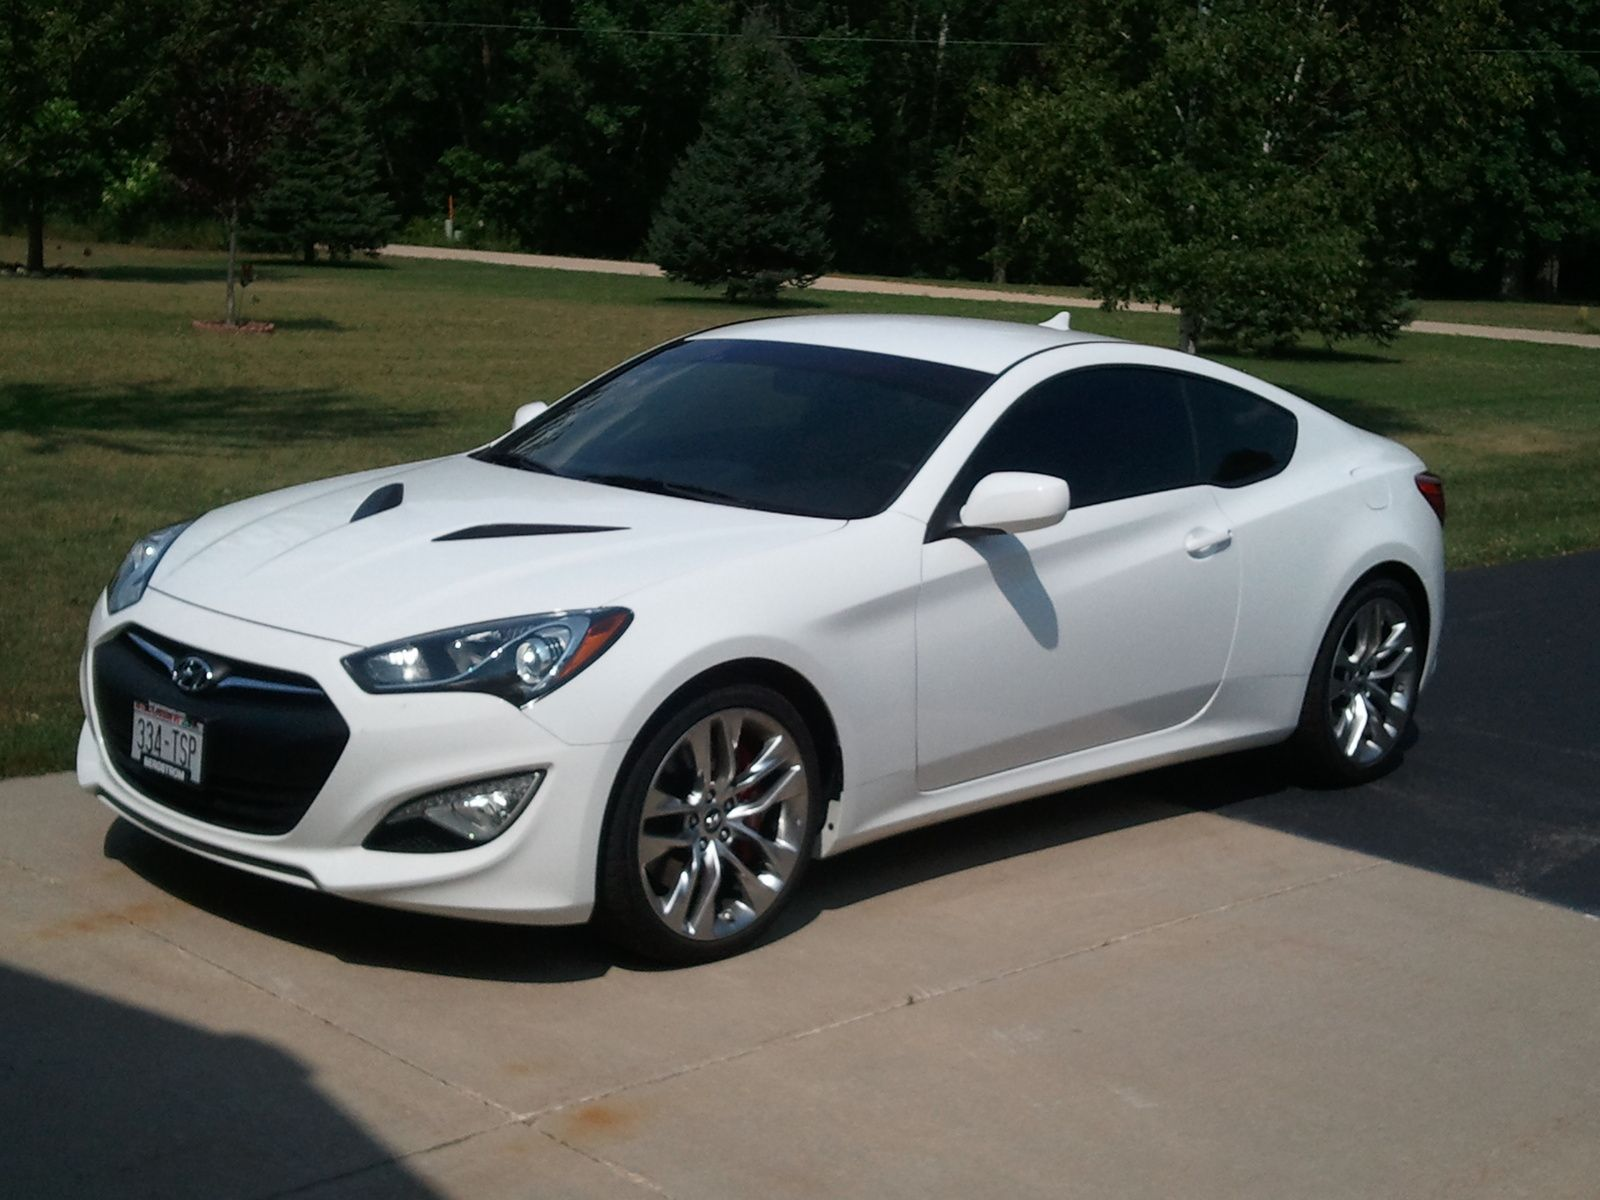 Best 25 2013 hyundai genesis ideas on pinterest hyundai genesis genesis automobile and 2015 hyundai genesis coupe